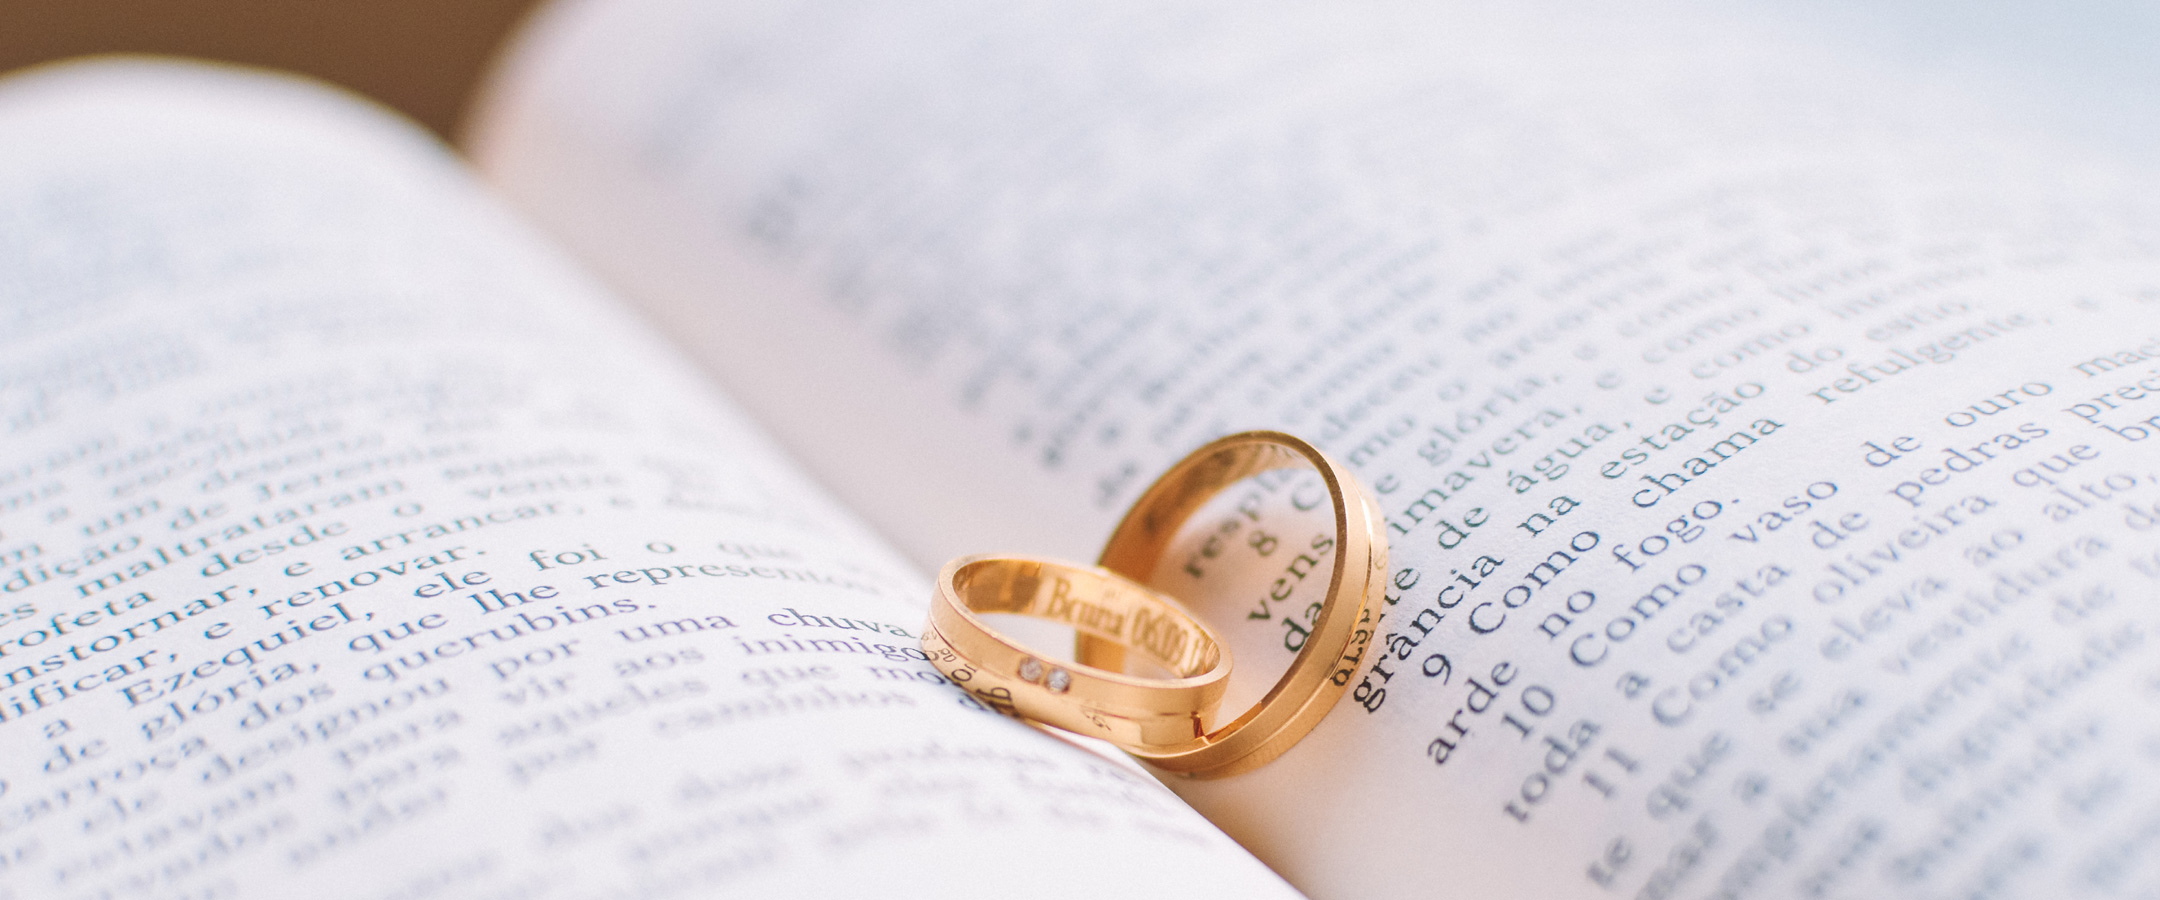 Cradle-to-Grave-Ceremonies-registered celebrant - Wedding - Handfastings and Vow Renewal photo by Caio Resende